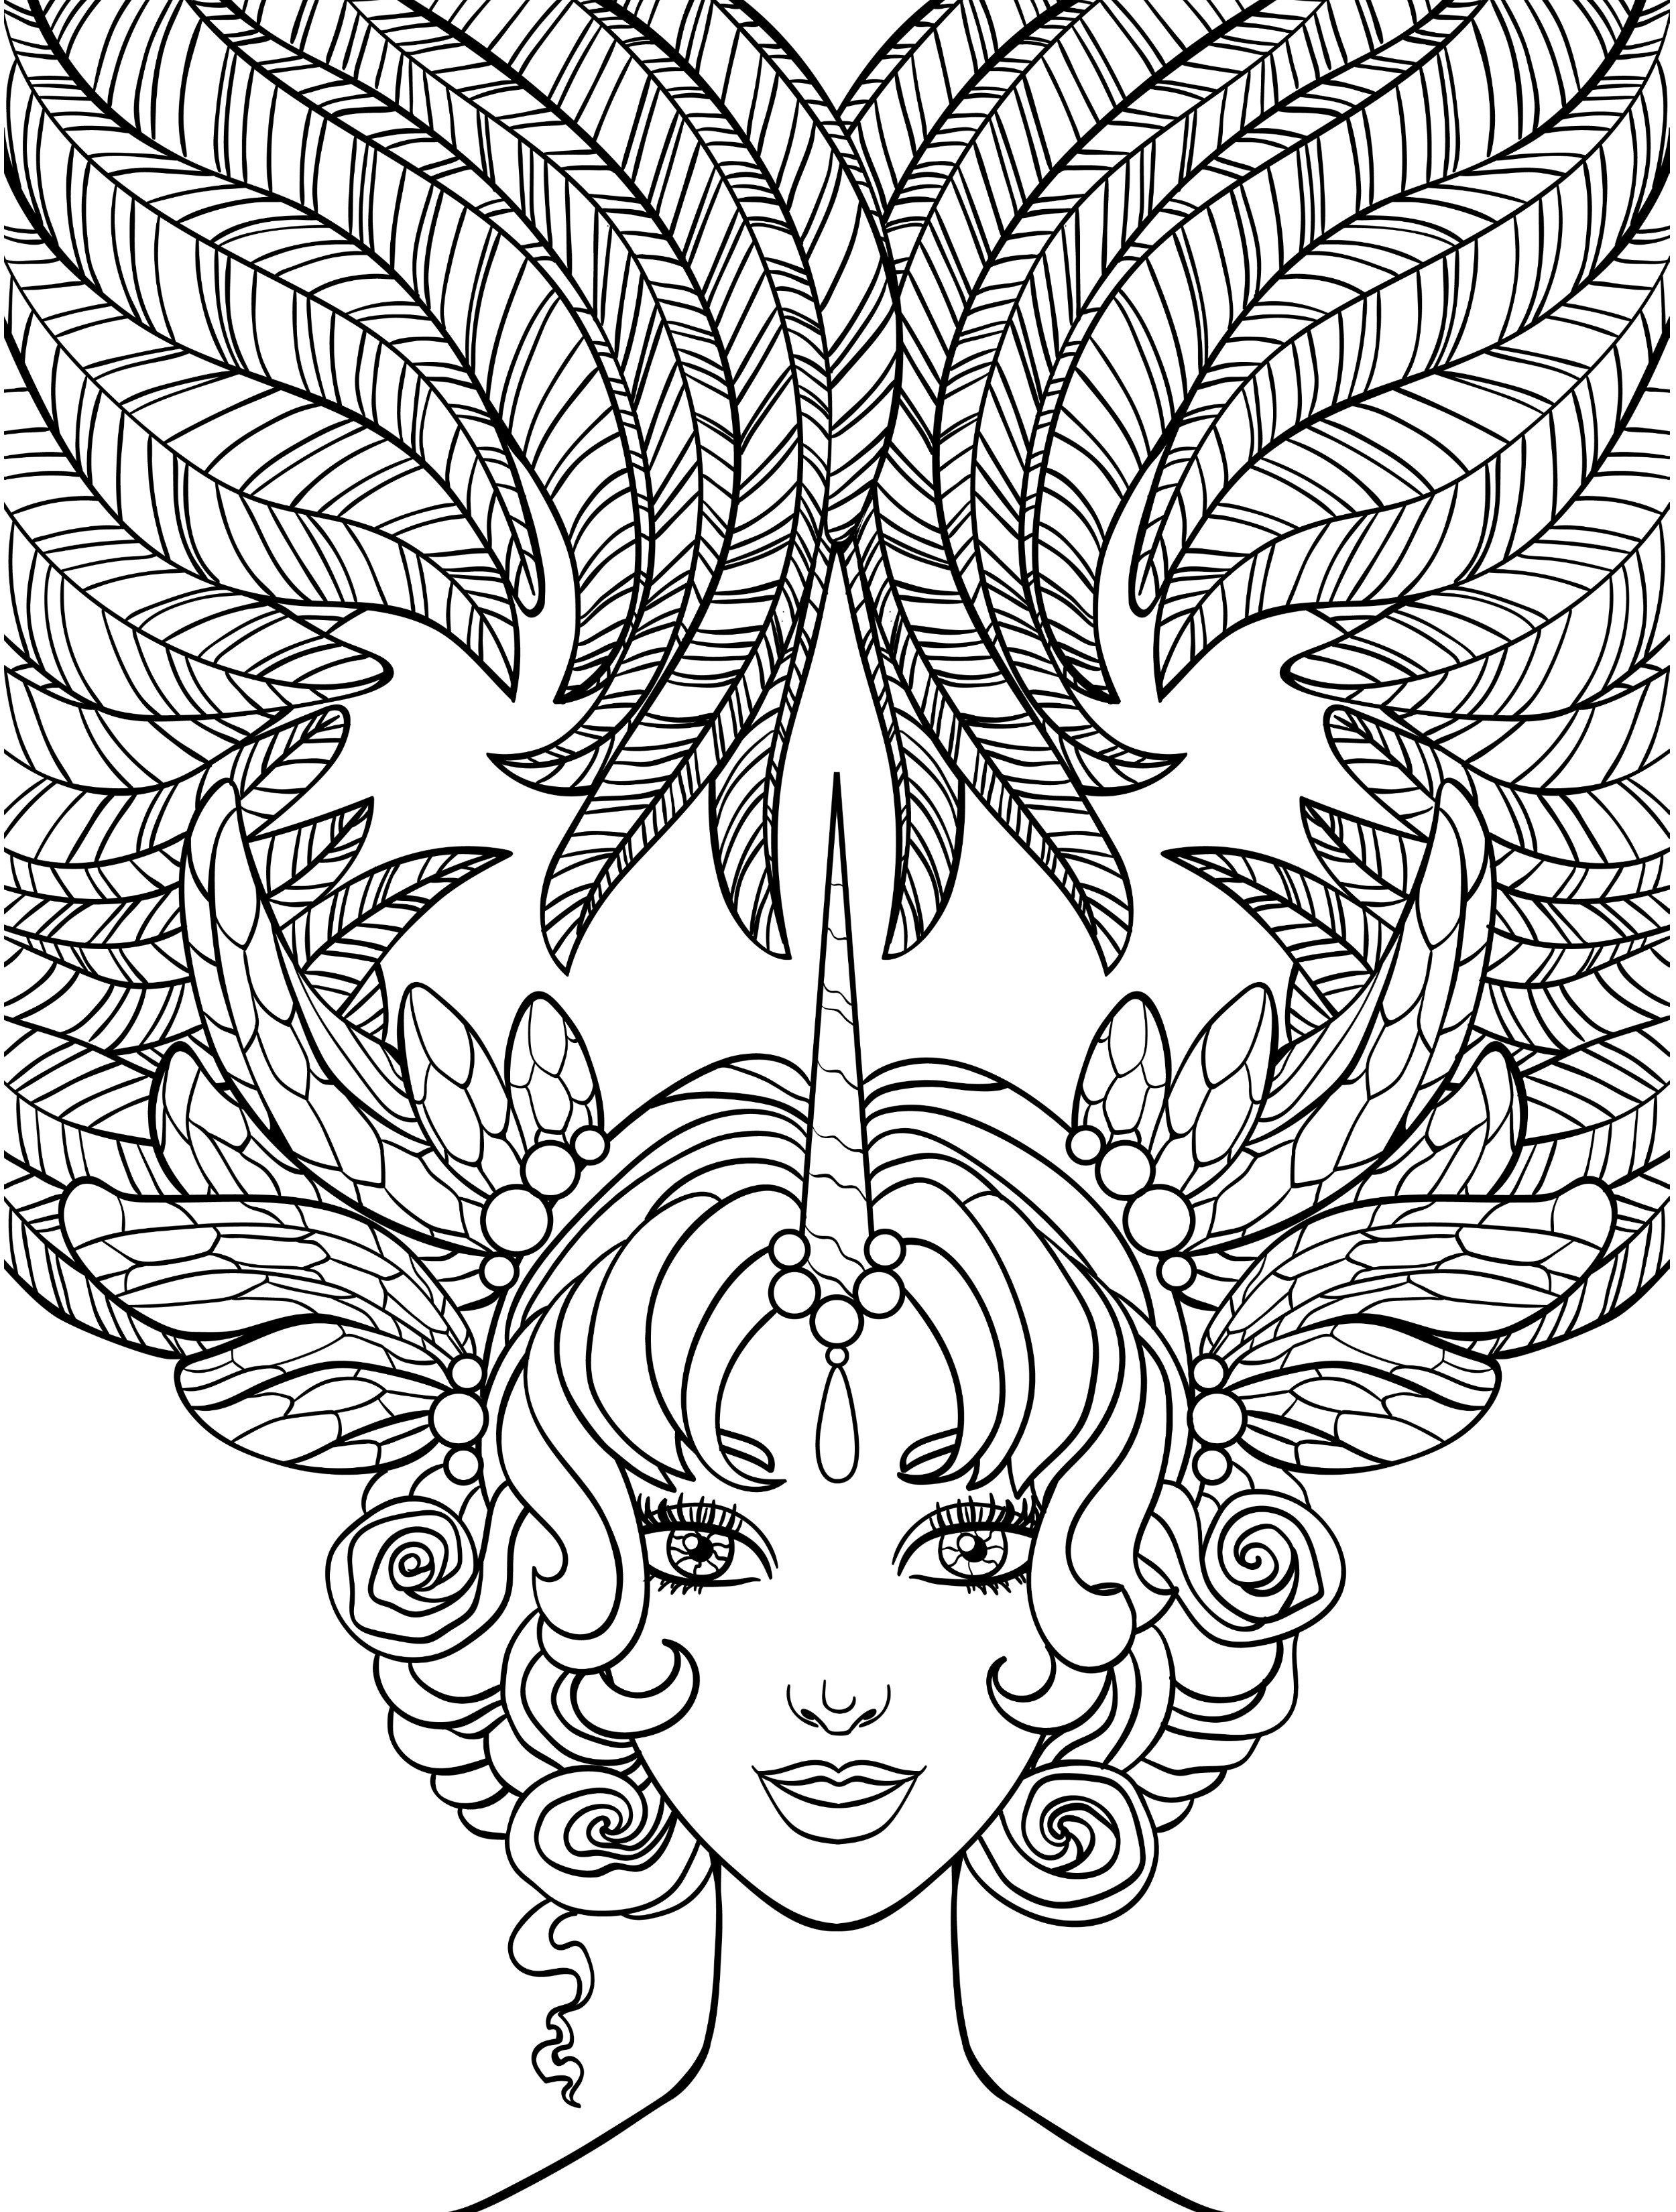 Ausmalbilder Erwachsene Fantasy Frisch 10 Crazy Hair Adult Coloring Pages Coloring Pages Elegant topmodel Bilder